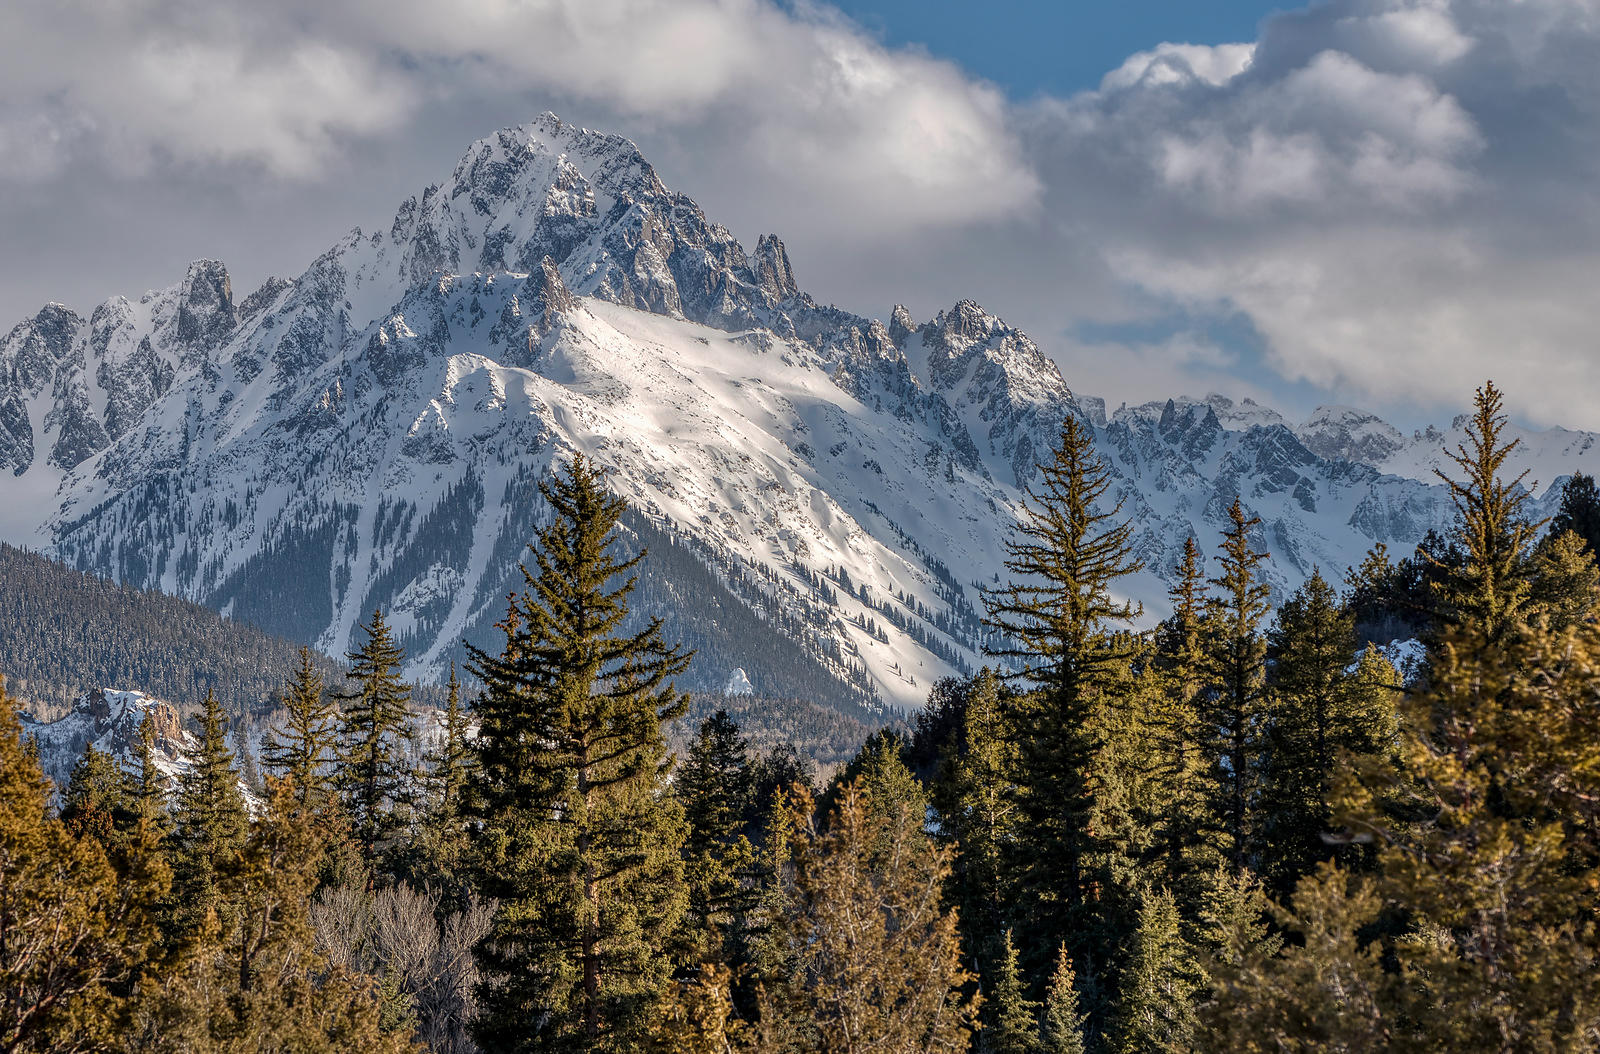 Winter Snow on Mount Sneffels